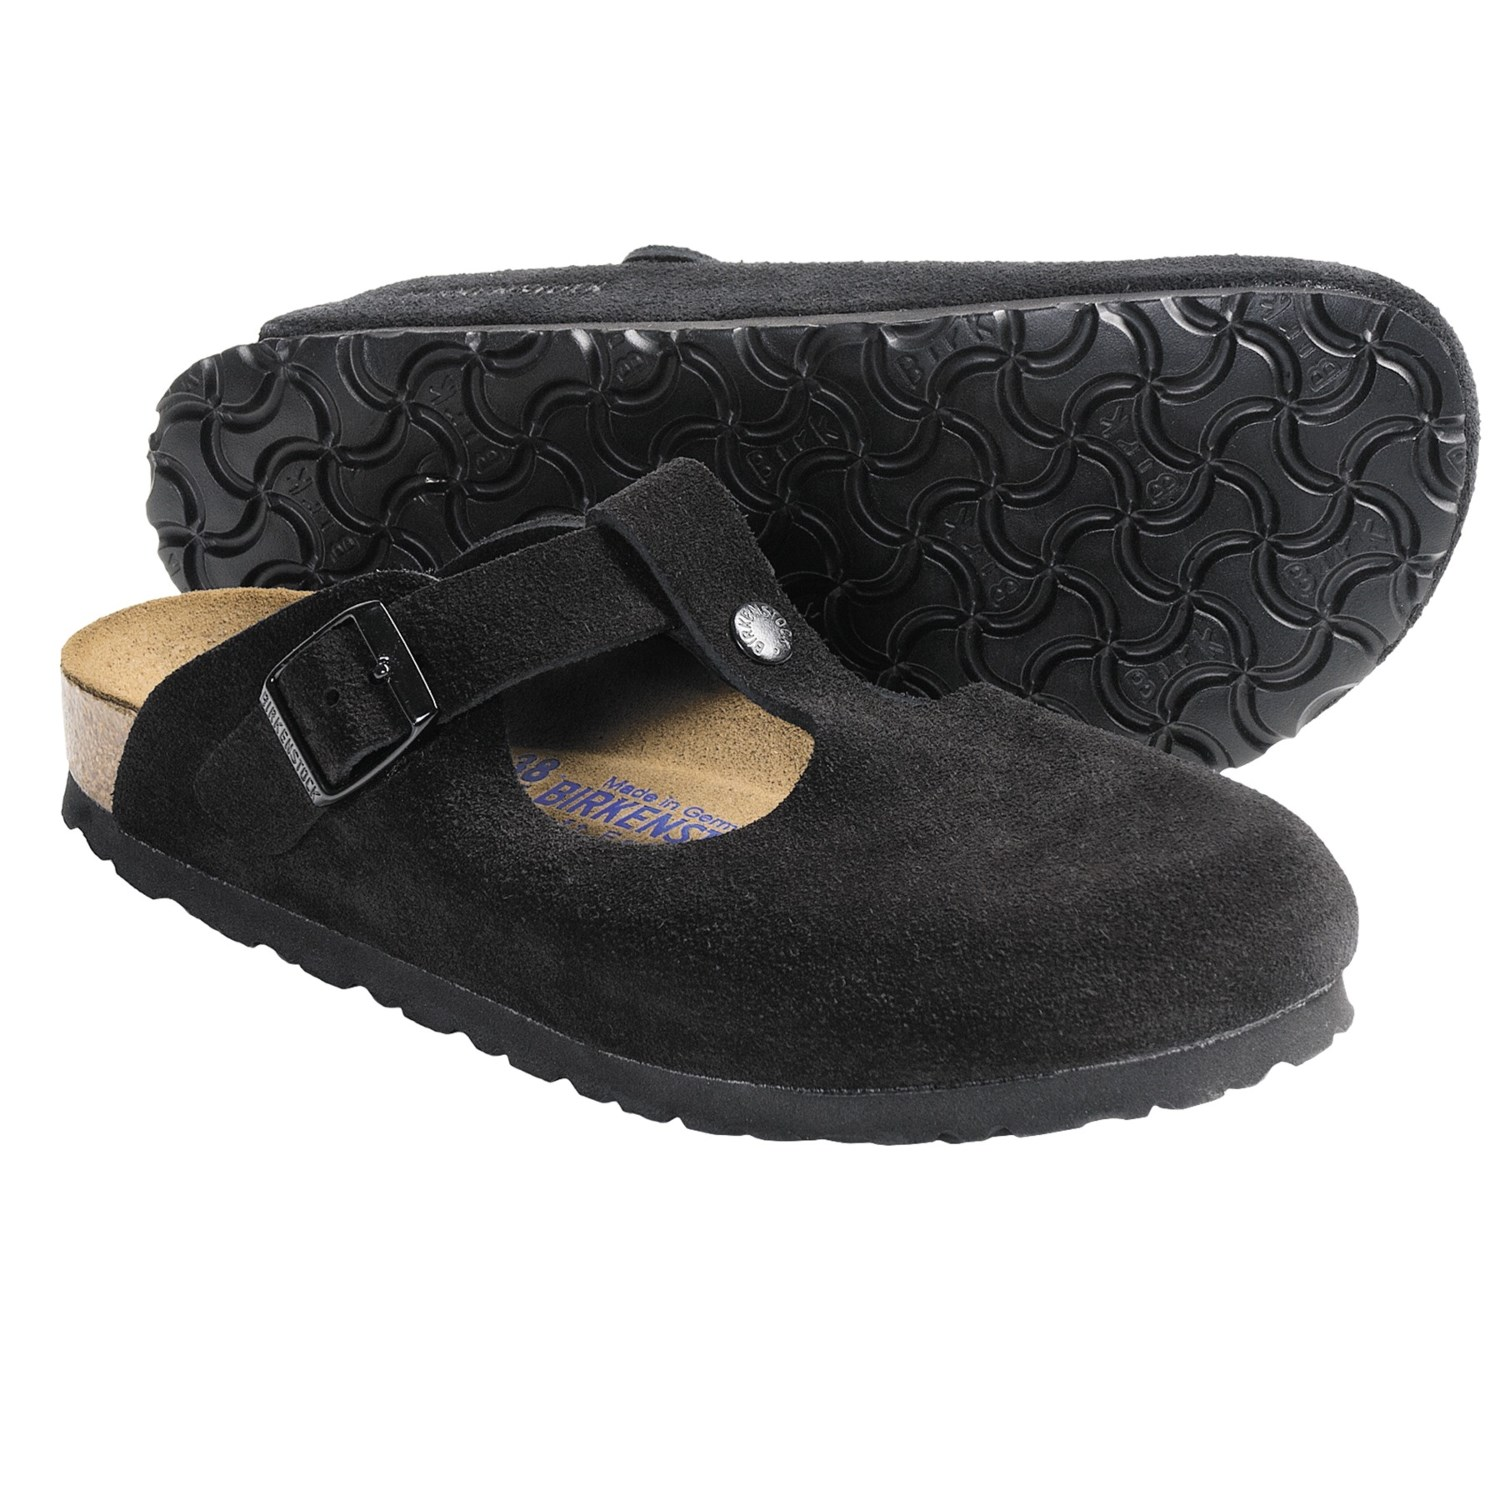 Birkenstock Eden Mary Jane Shoes - Footprints Collection (For